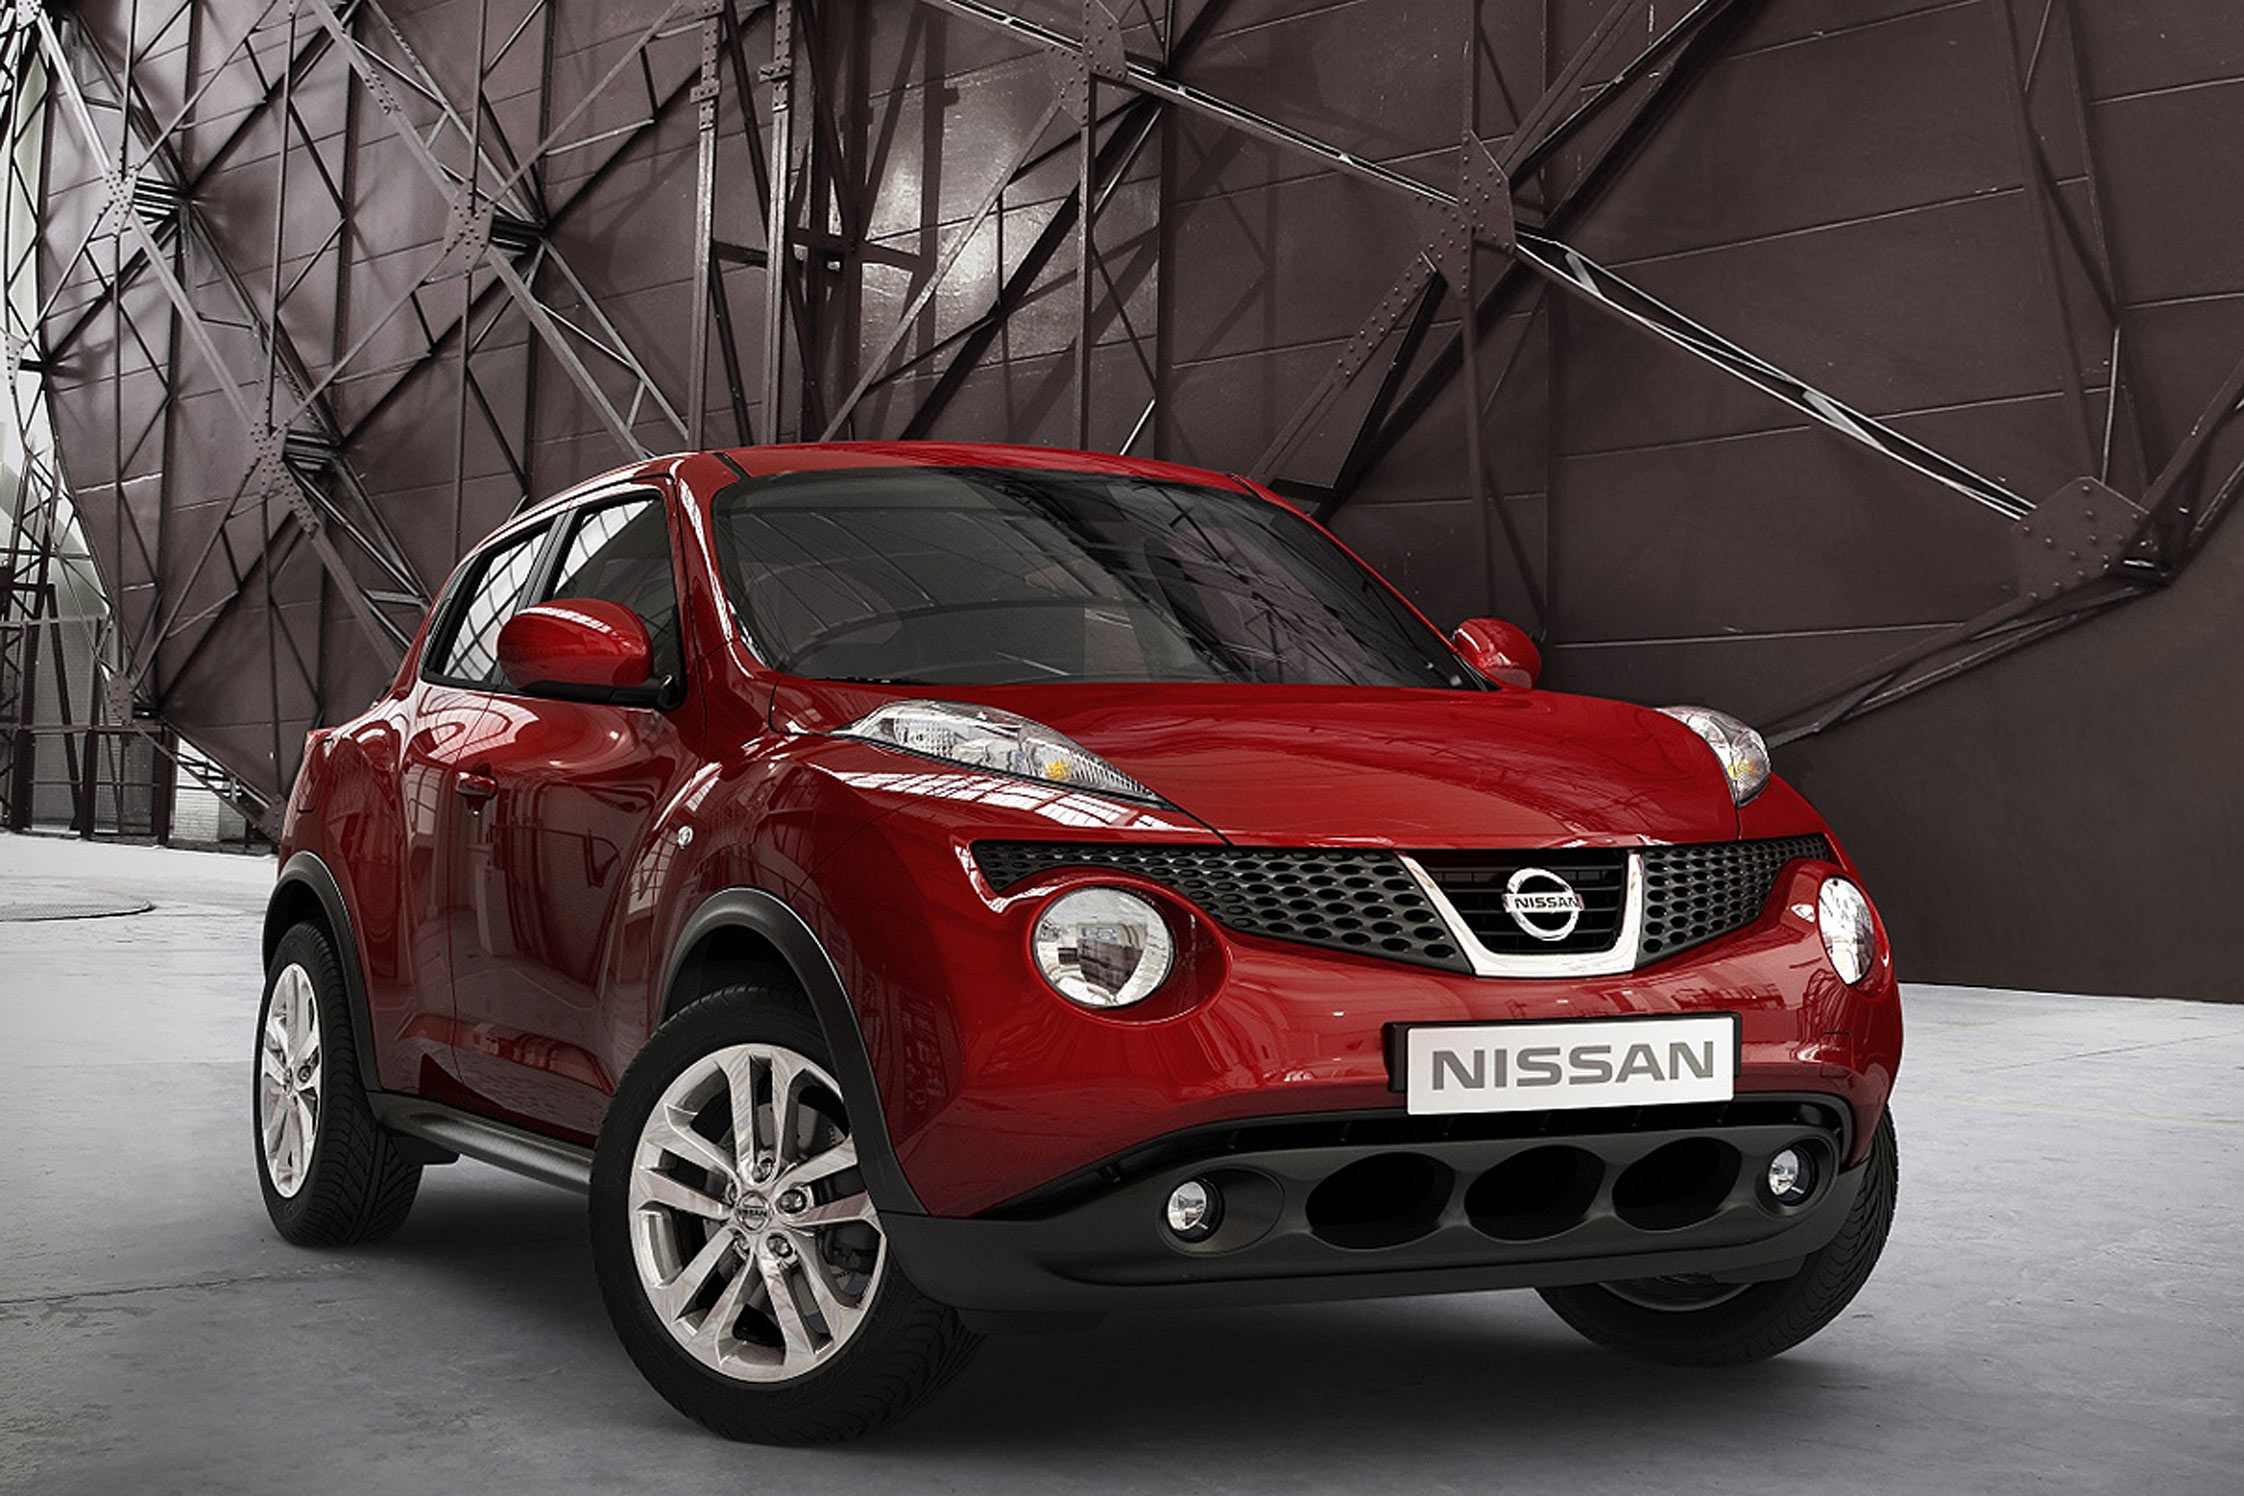 essai nissan juke motorlegend. Black Bedroom Furniture Sets. Home Design Ideas